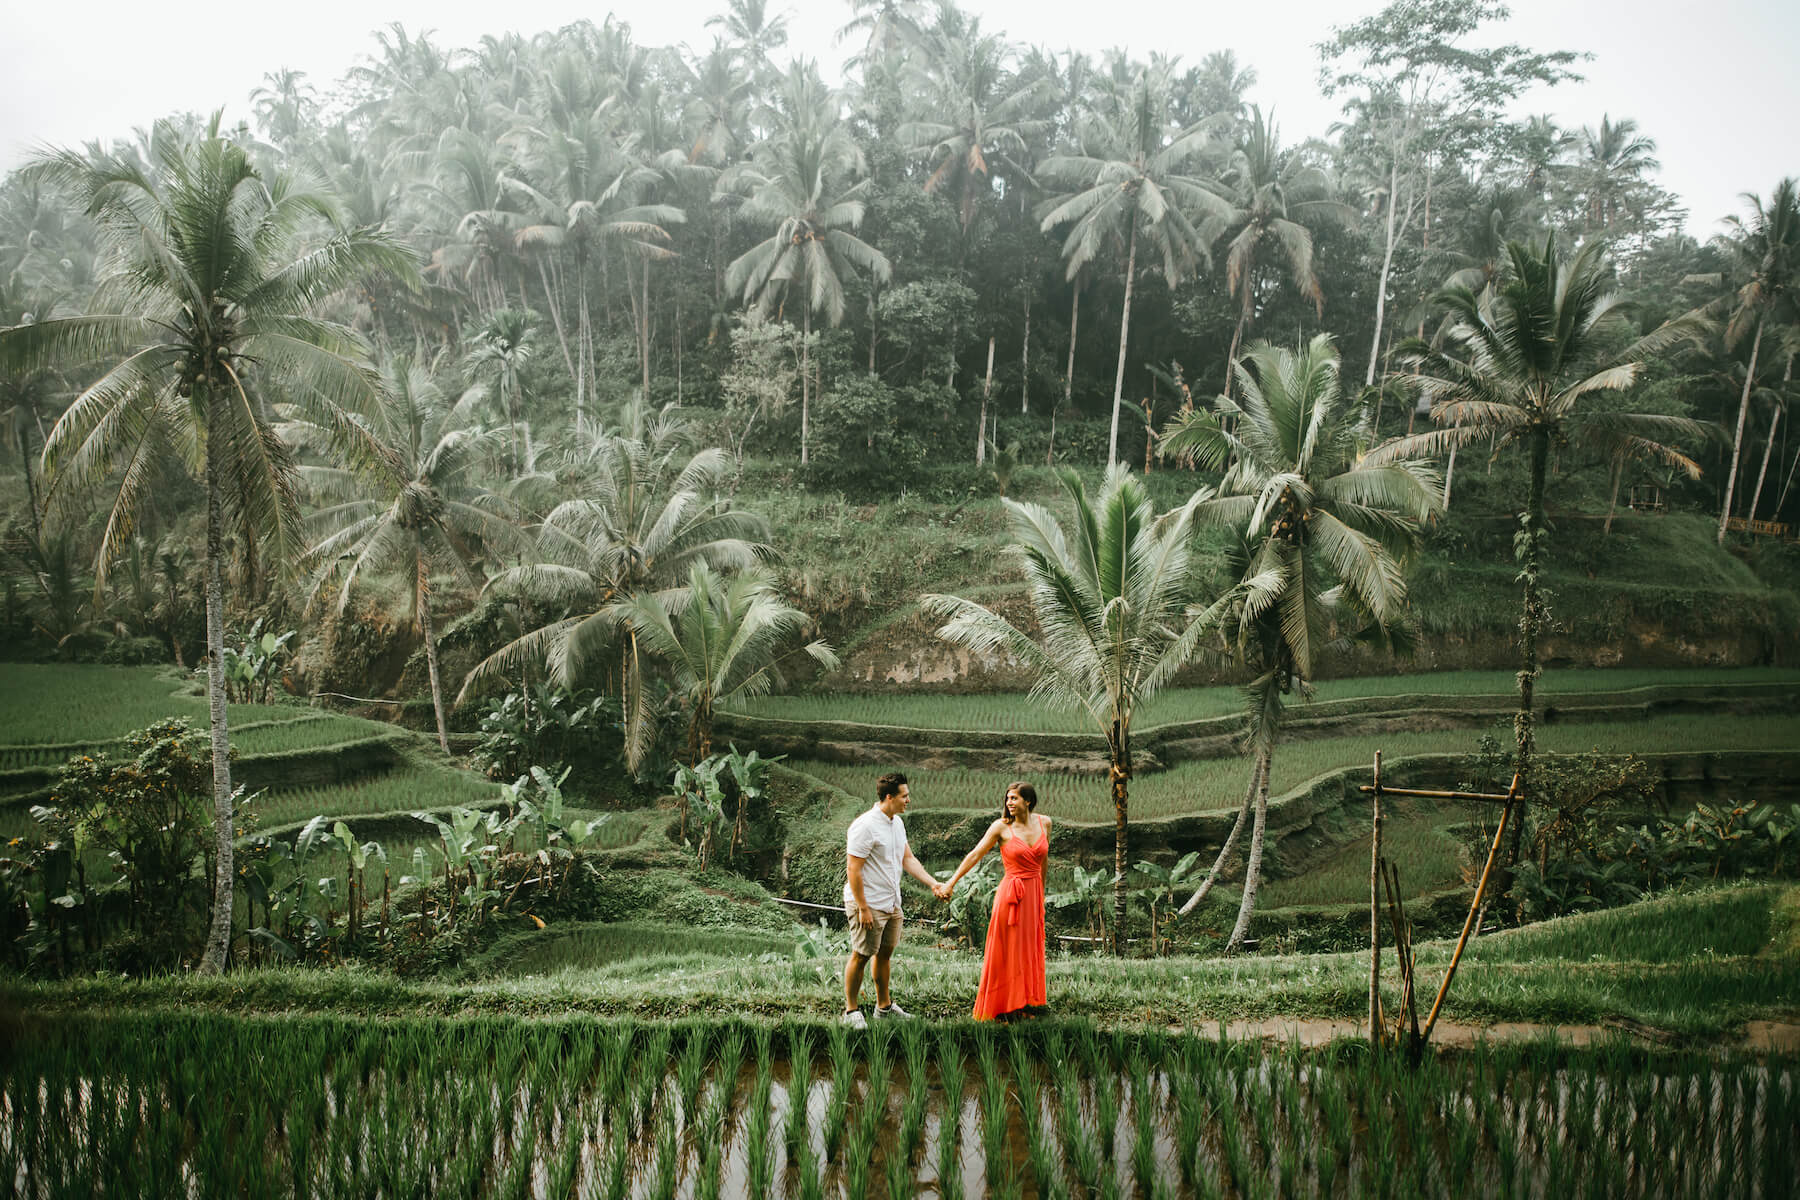 couple walking and holding hands in bali, Indonesia